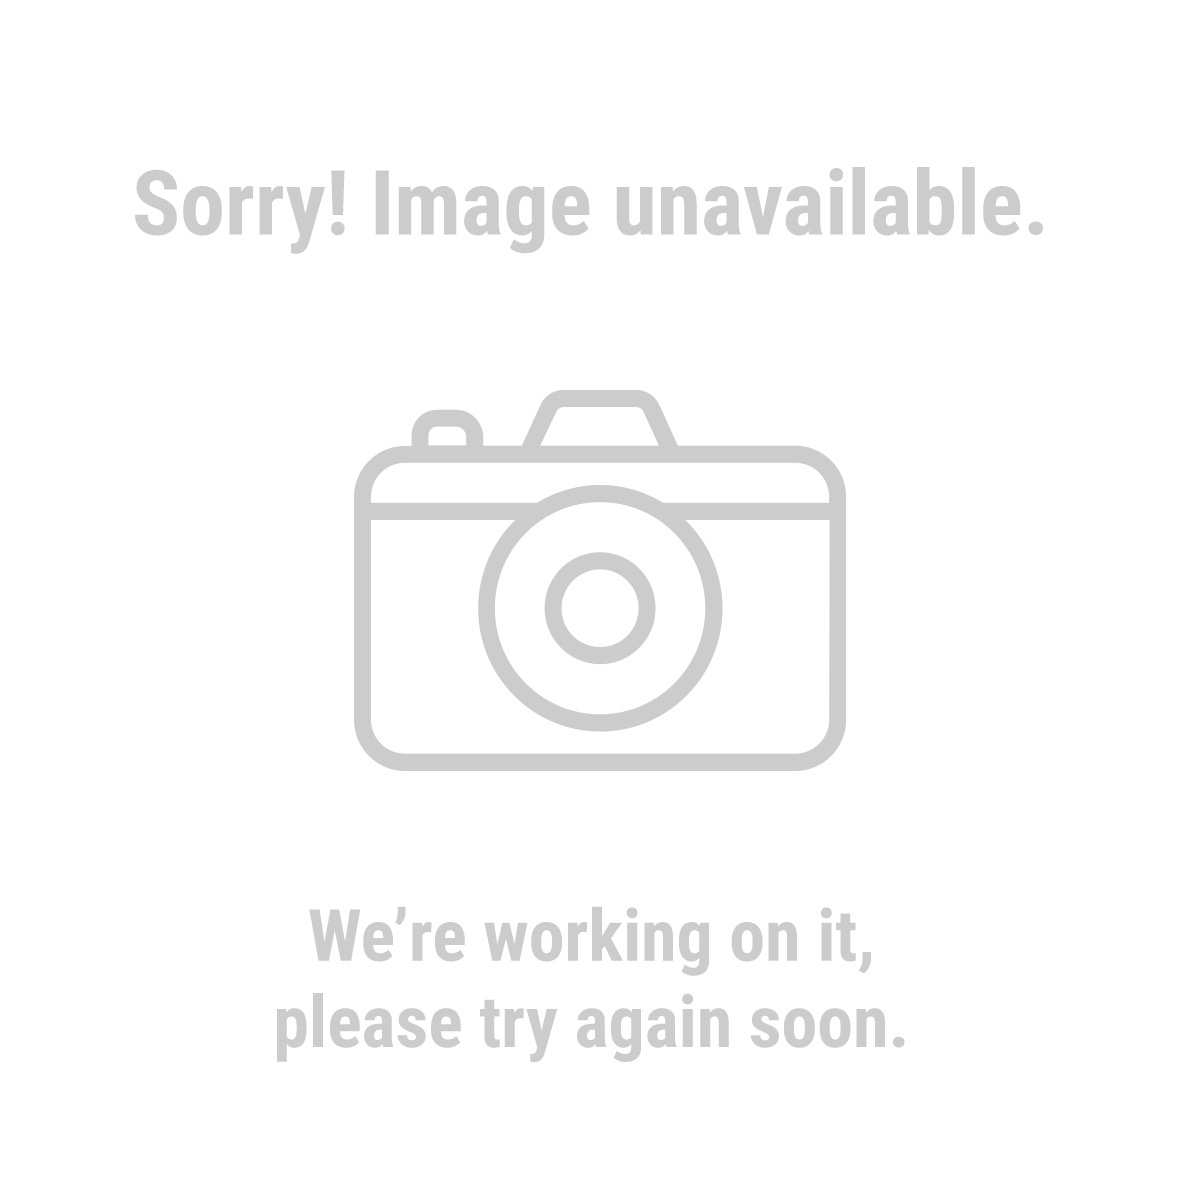 9646 32 in. x 15 in. x 10 in.  Medium Animal Trap